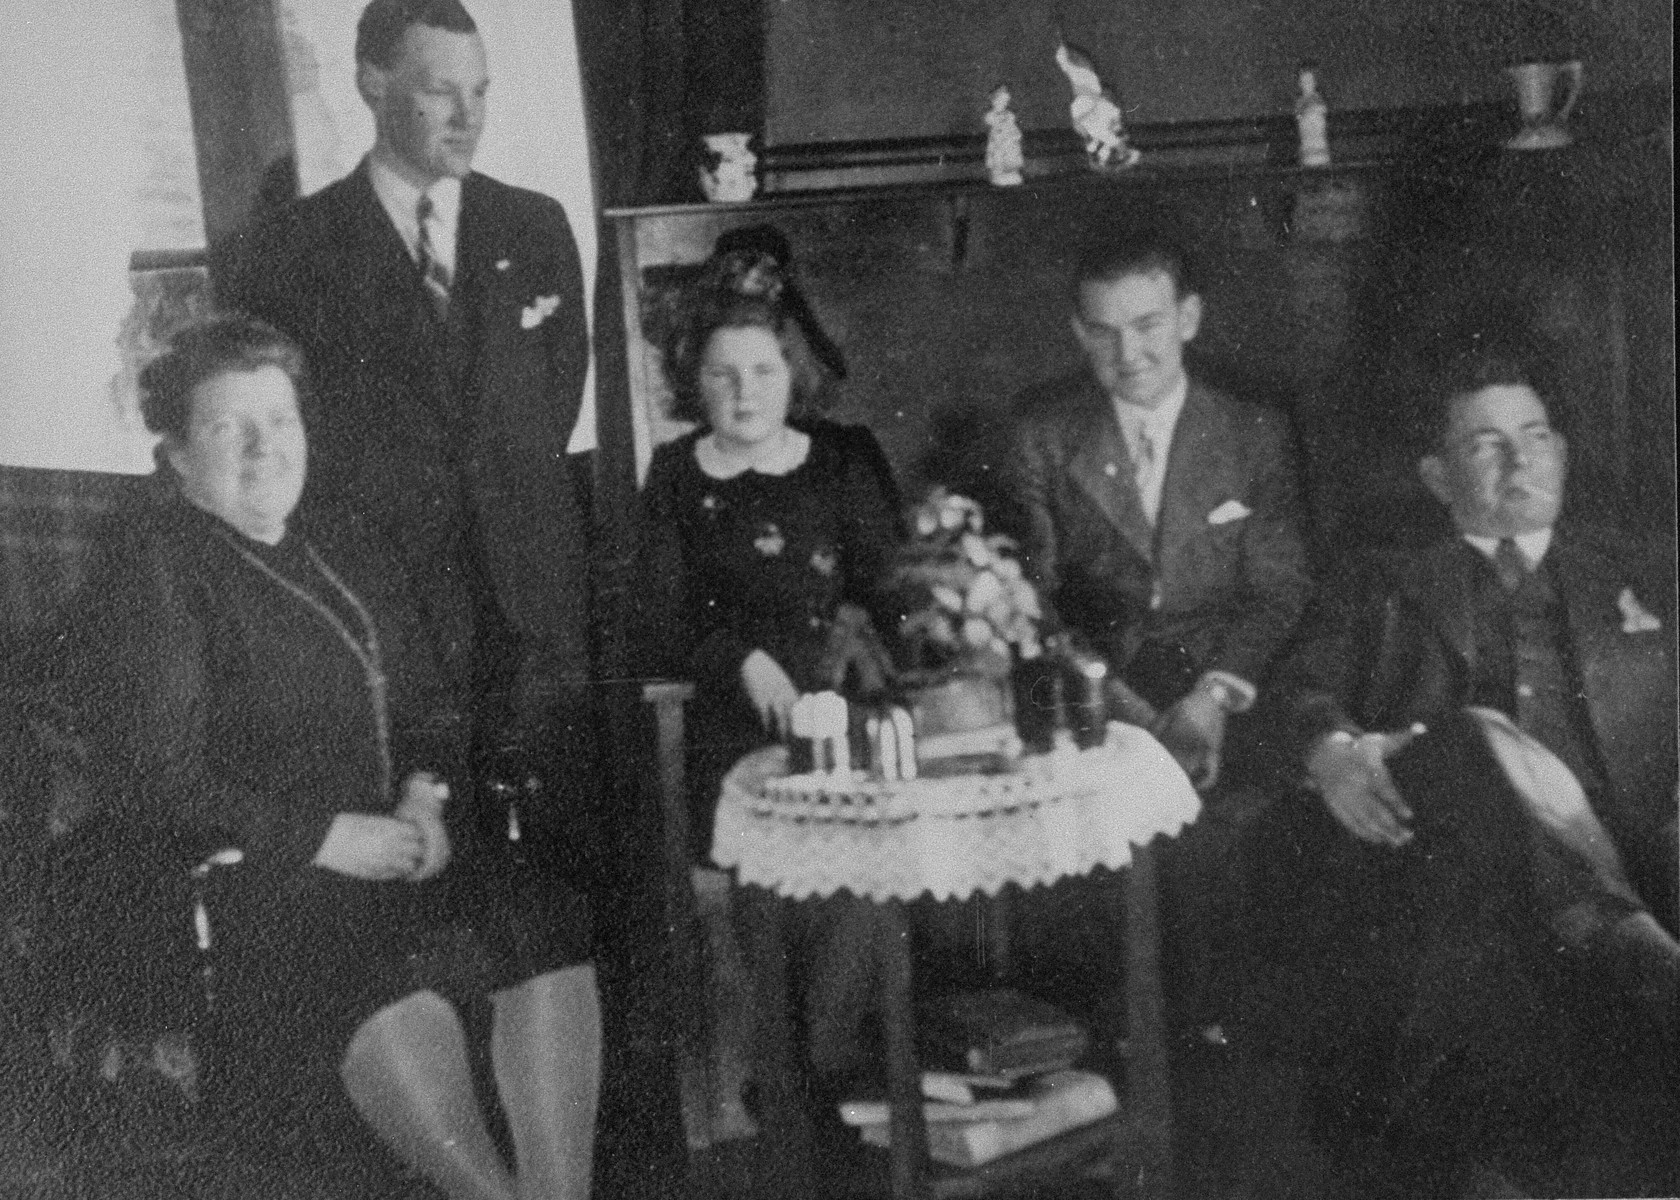 Portrait of a Dutch family who hid Jews during the war.    Pictured are Hank Hornsveld, his wife, and their three children,  who offered their house as a hiding place for Flory and Felix Van Beek. Fleeing the Gestapo the Van Beeks knocked on their door in the middle of the night of January 21, 1944 and stayed until the end of the war.